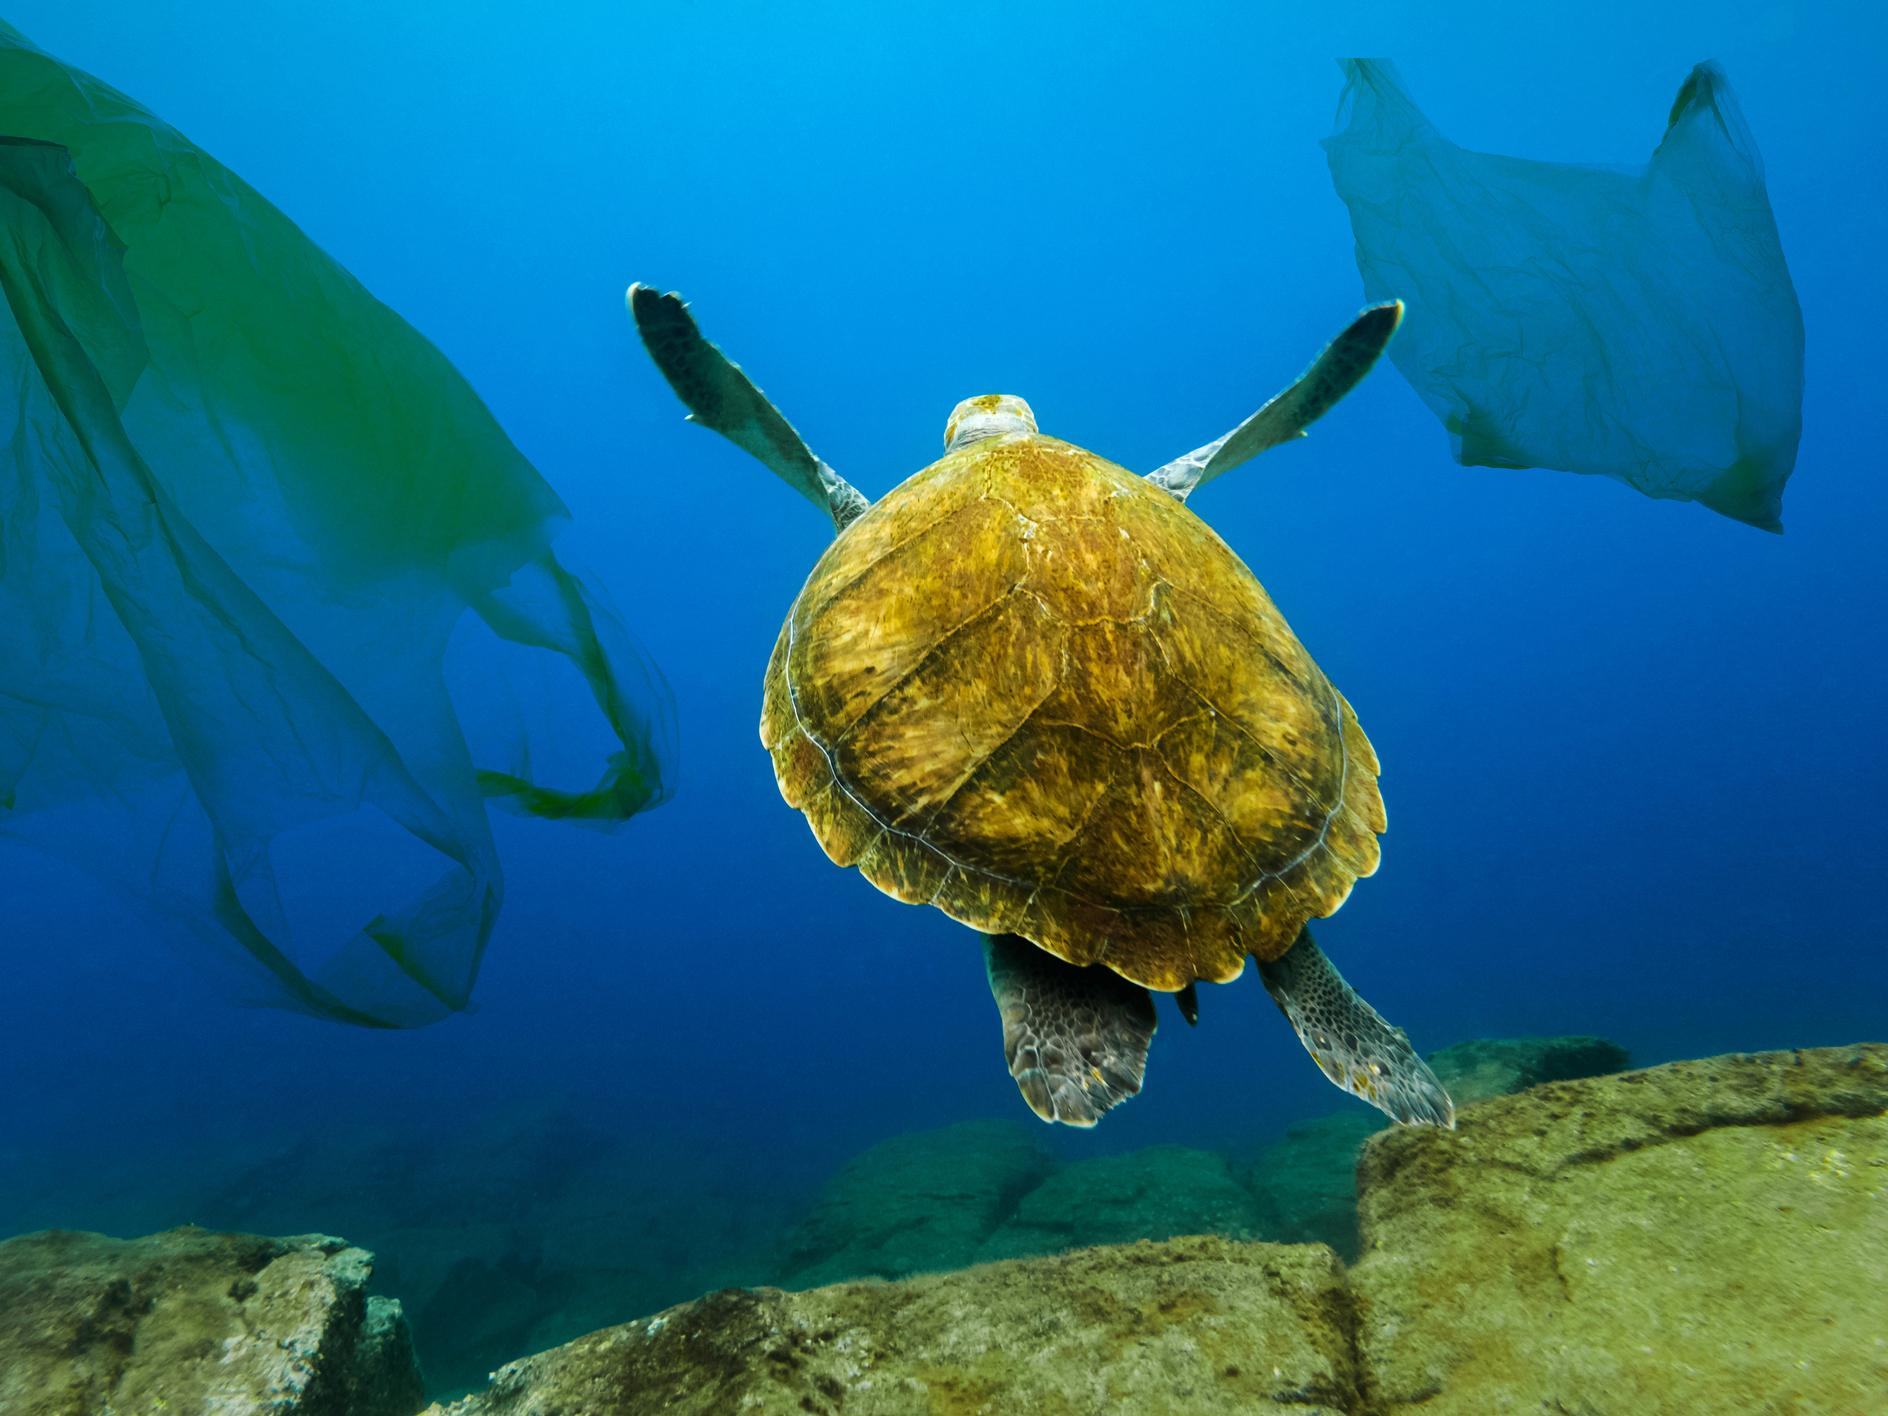 Turtles - latest news, breaking stories and comment - The